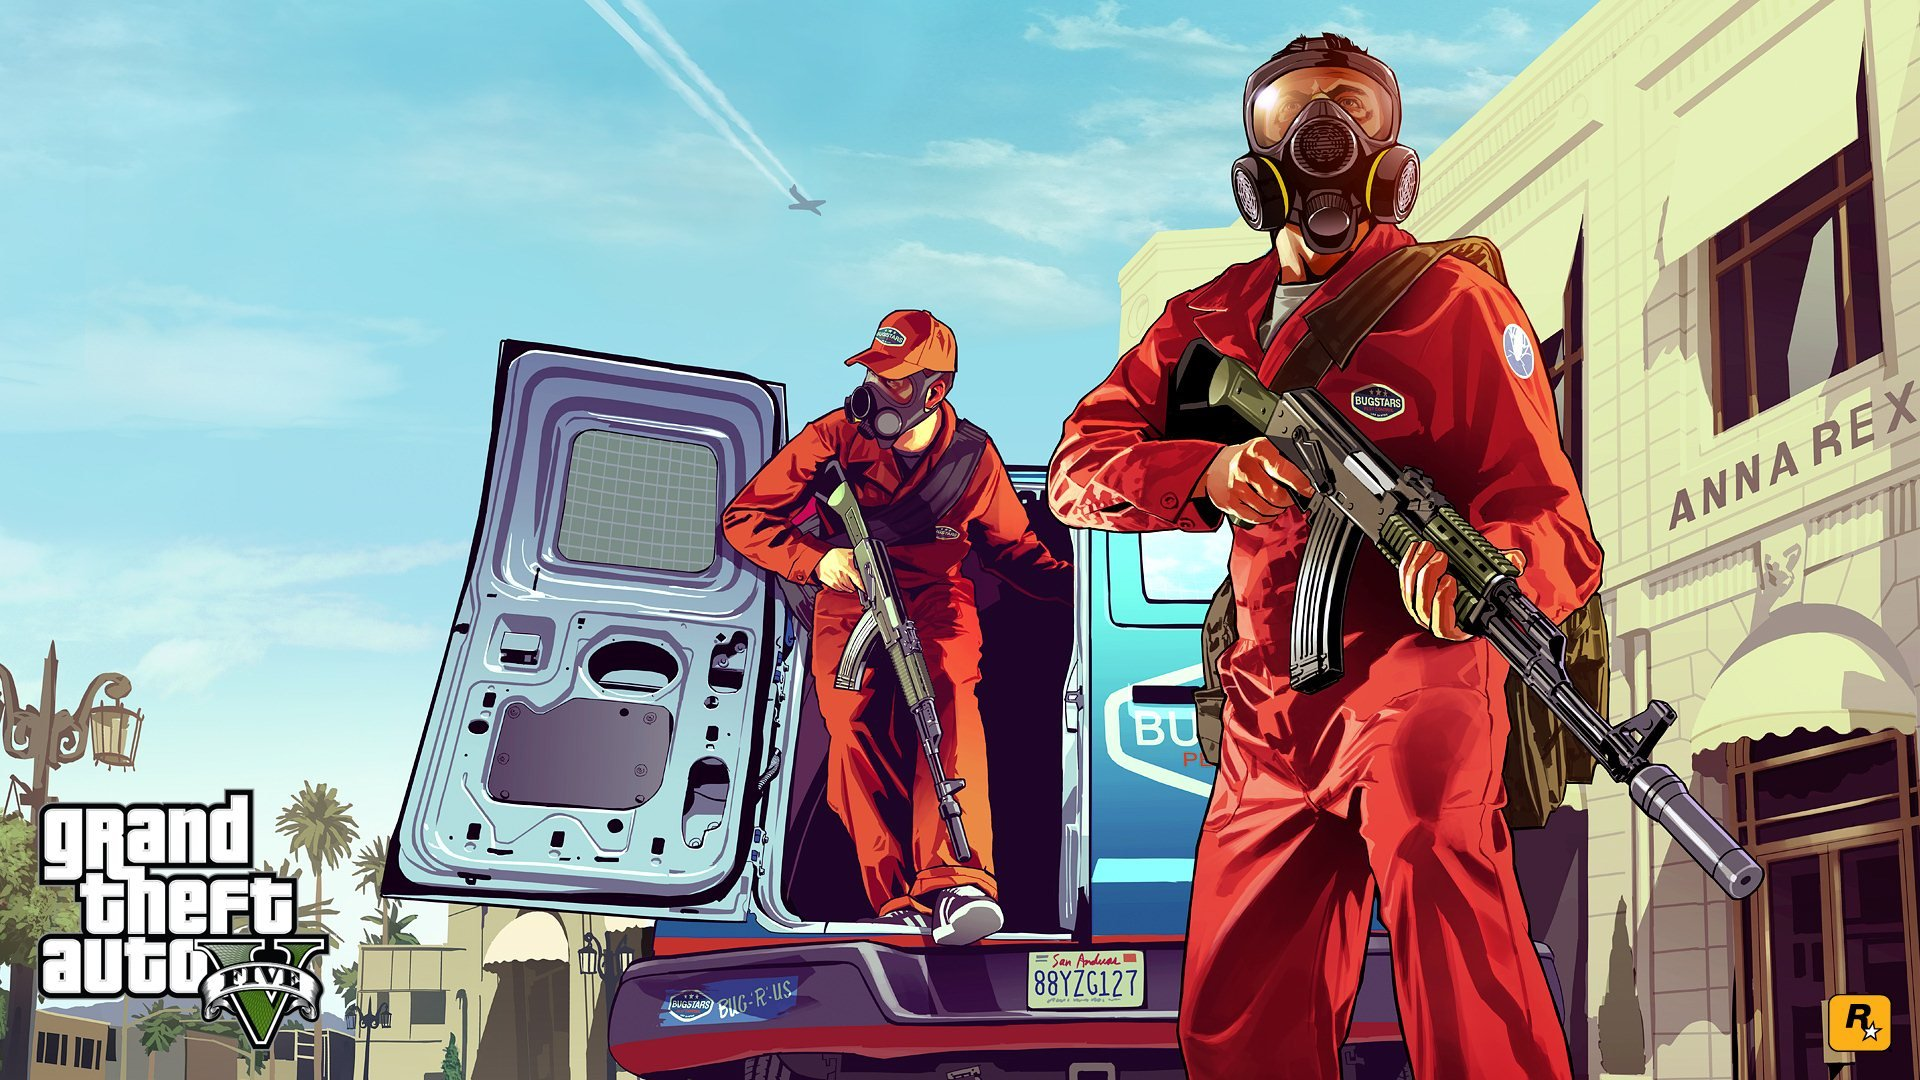 The first official art GTA V